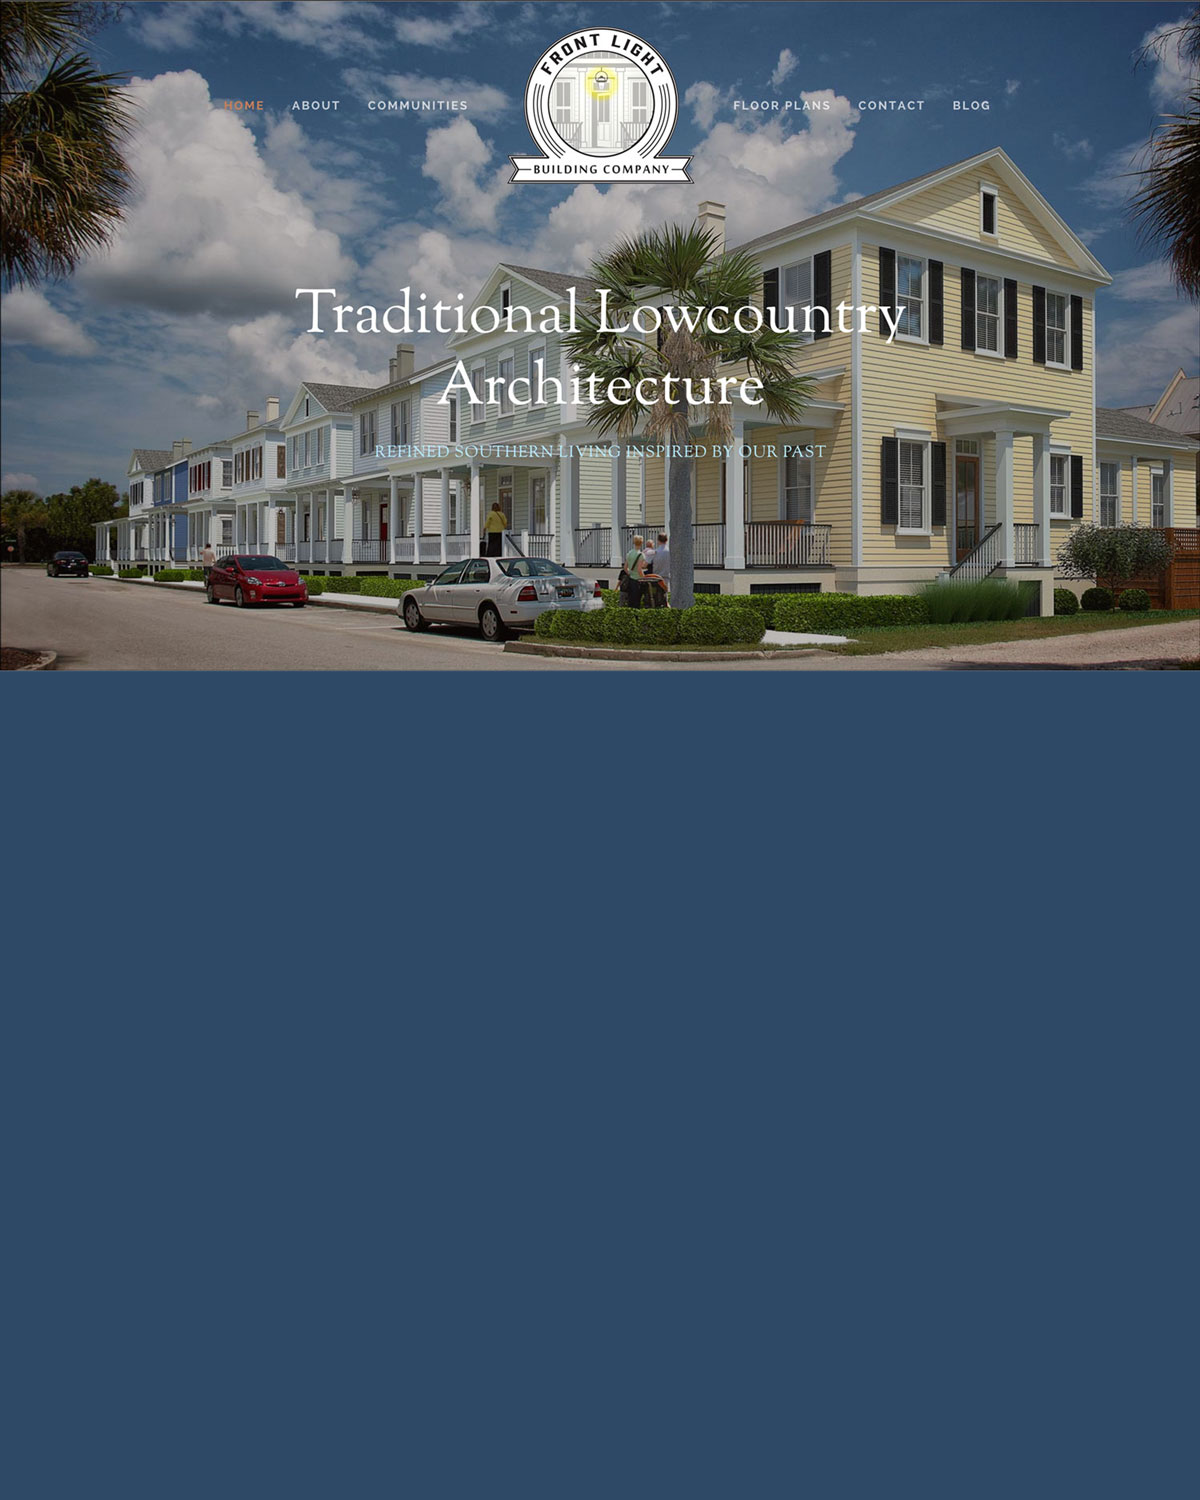 Front Light Building Company - A Home Developer and Planned Community in South Carolina